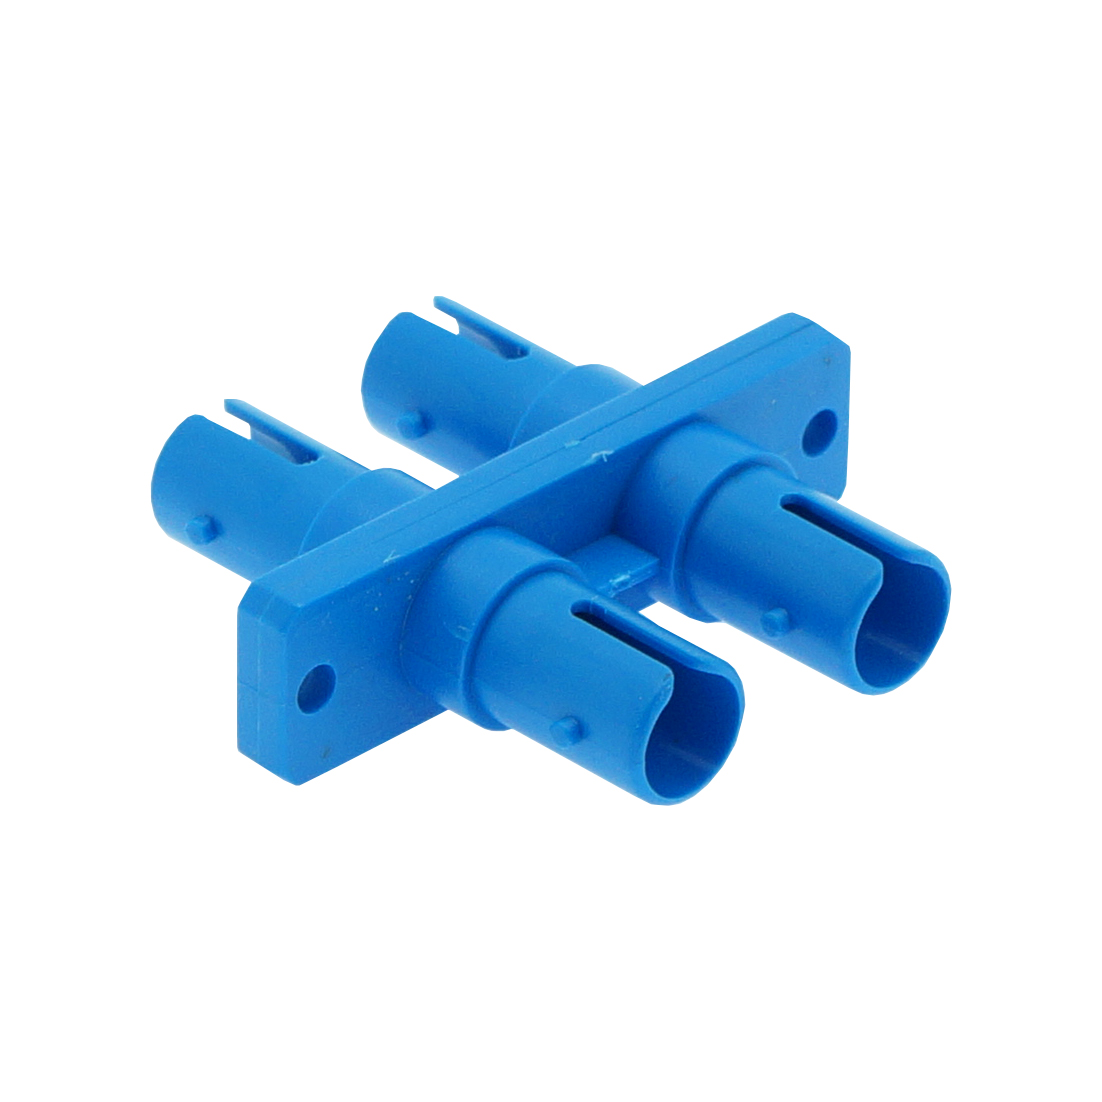 ST SM DX with flange Adapter, Blue Color, Plastic